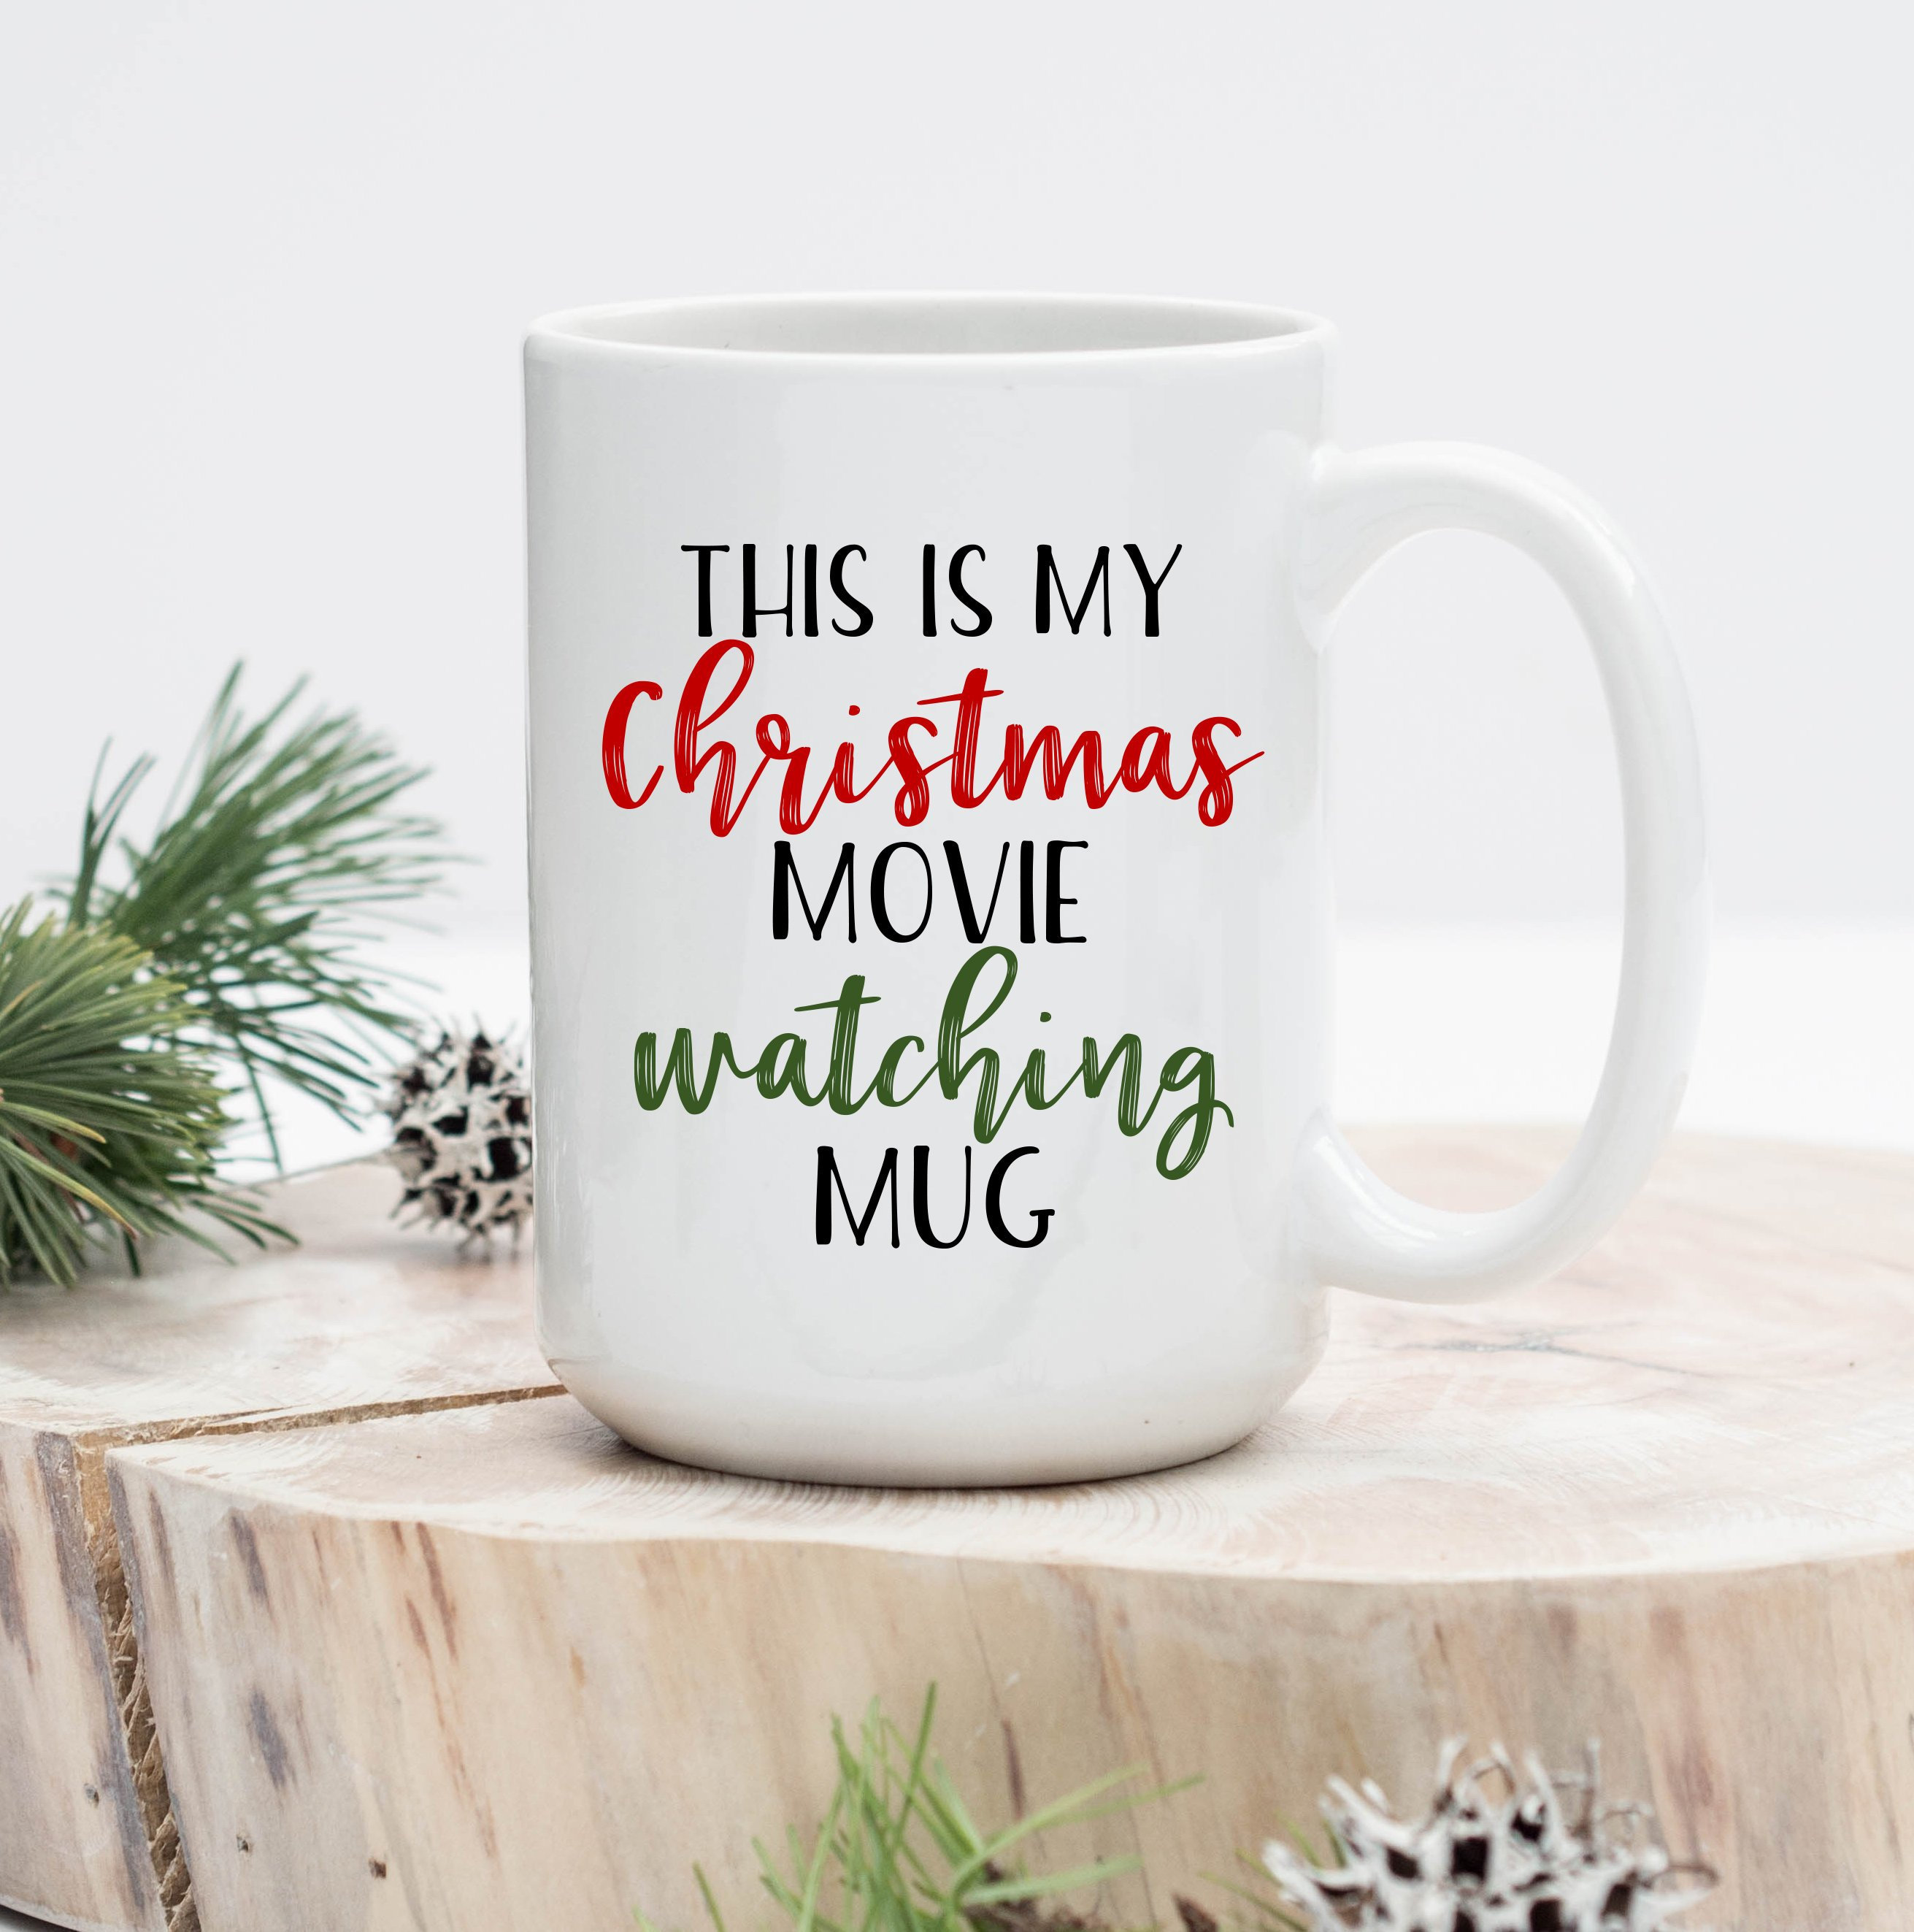 This Is My Christmas Movie Watching Mug Hallmark Christmas | Etsy